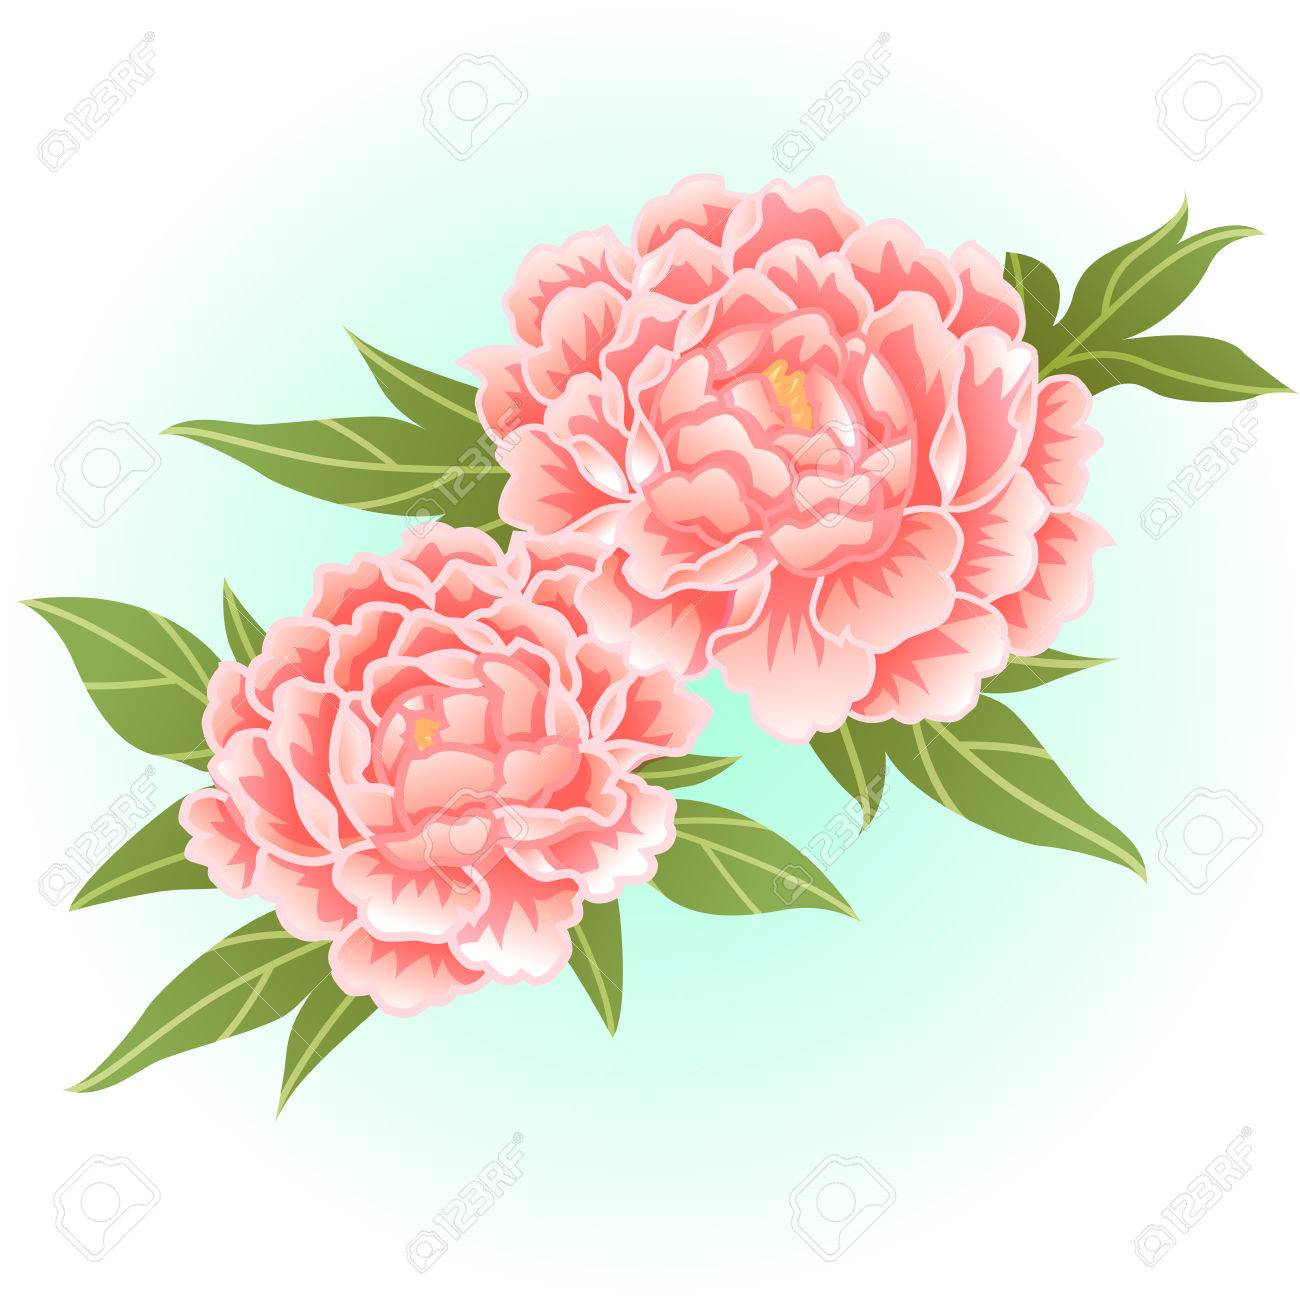 Old Rose Pink Peony Flower Illustration Royalty Free Cliparts